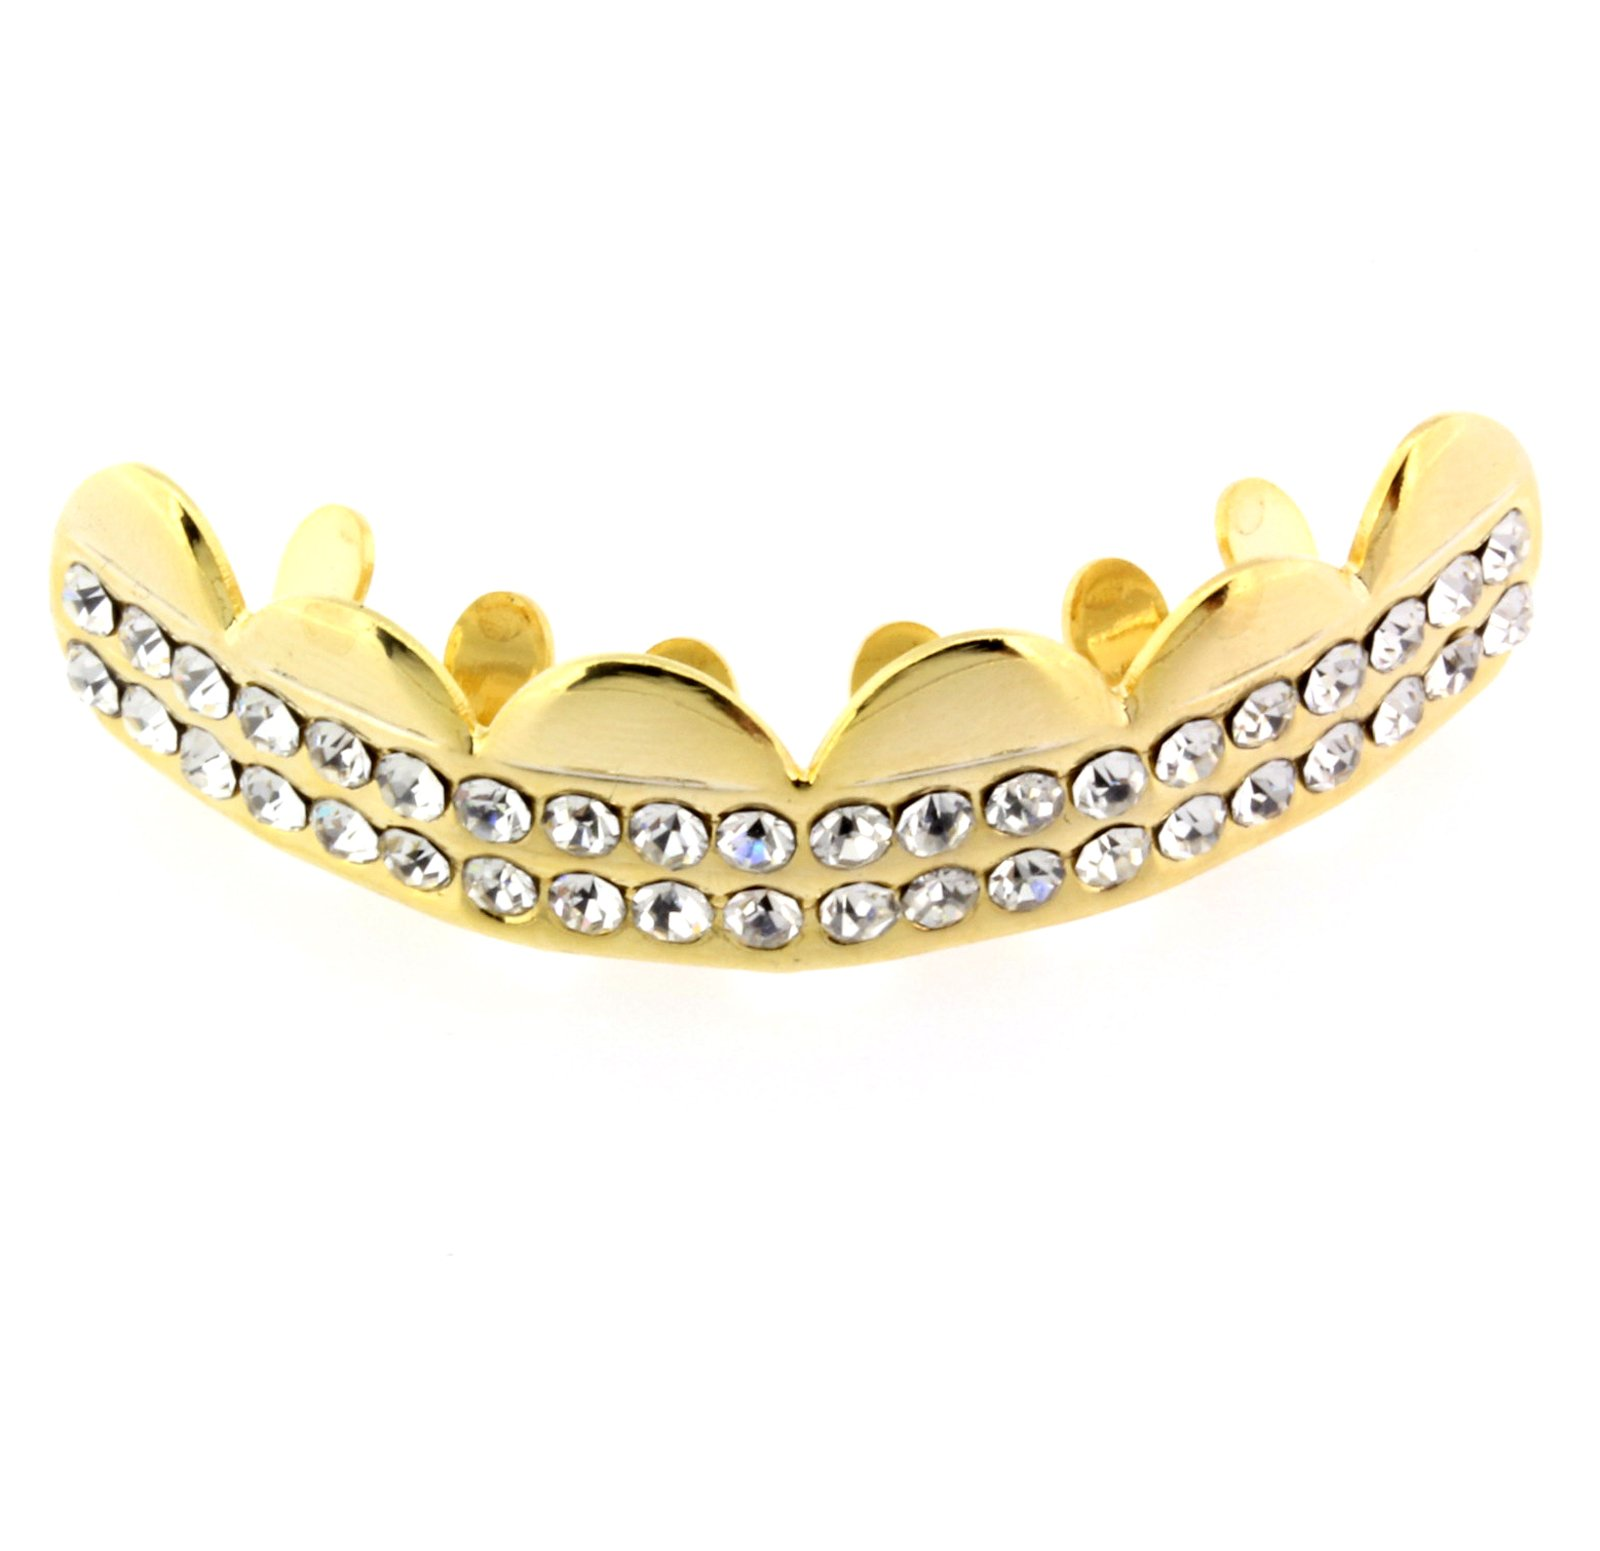 14K Gold Plated High Fashion Hip Hop Top Row Clear 2 Row Removeable Grillz Teeth Mouth Grills